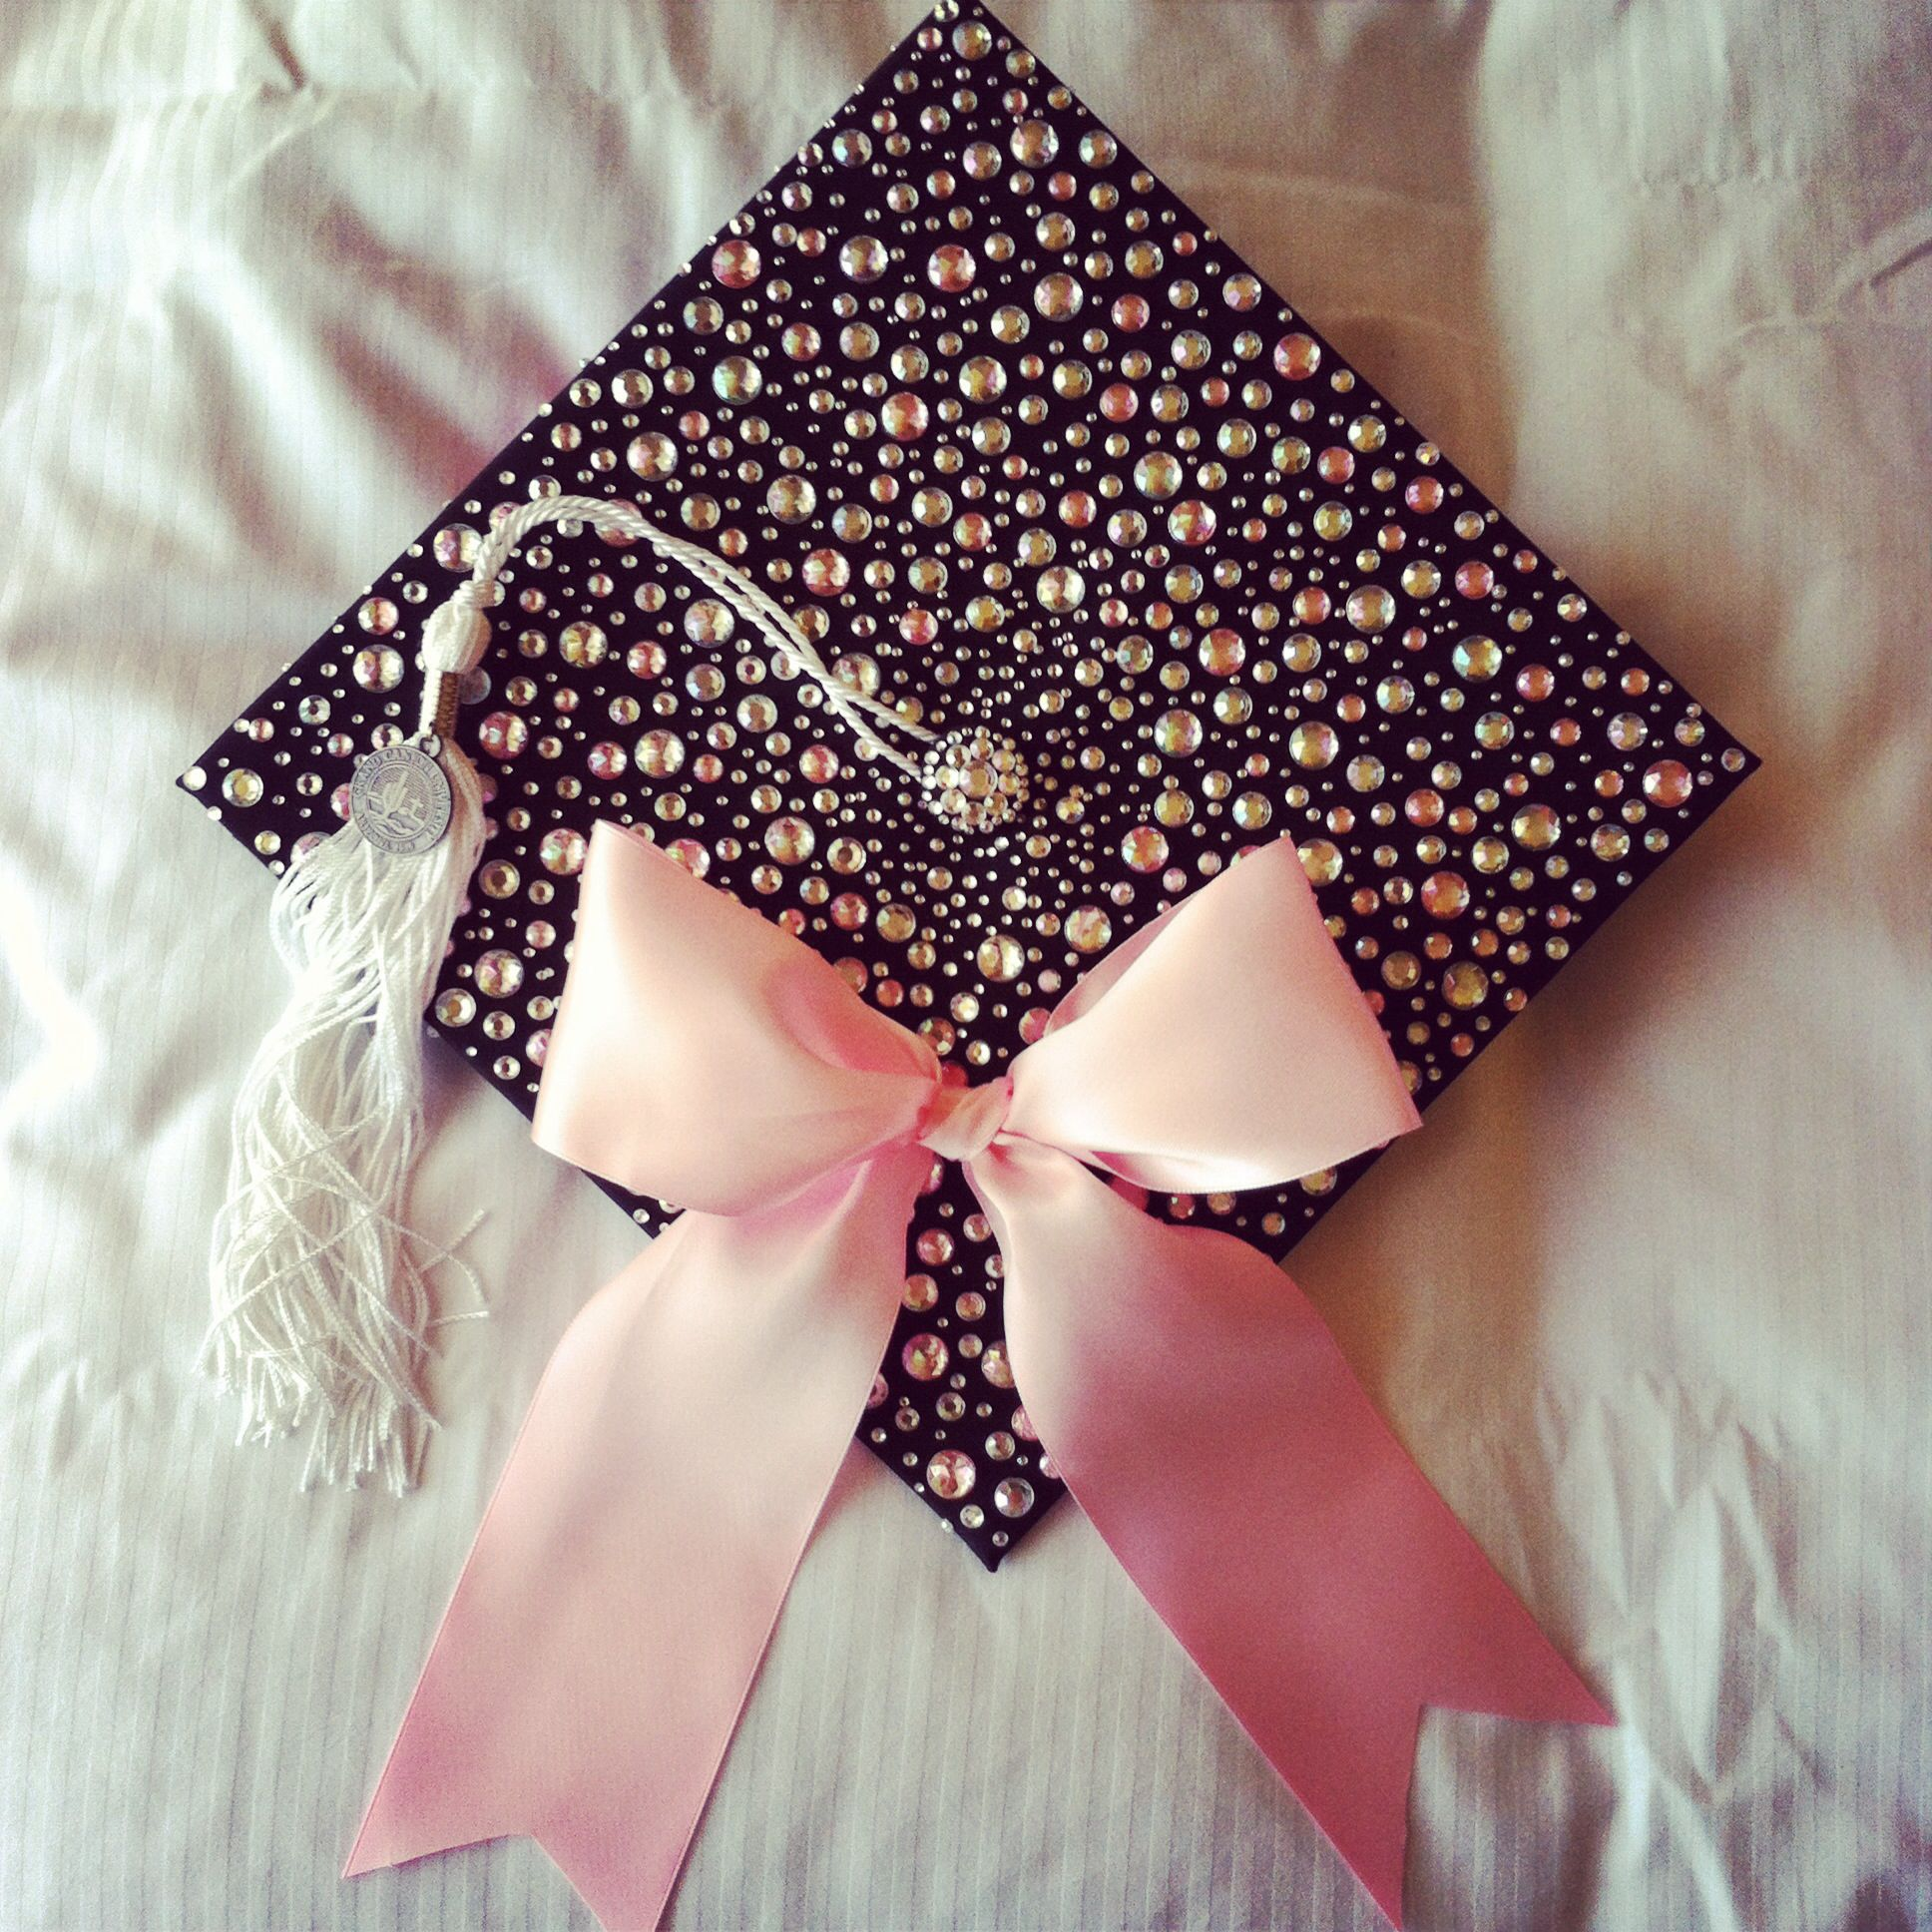 Graduation Cap...minus the bow! & Graduation Cap...minus the bow! | grad cap | Pinterest | Green ...